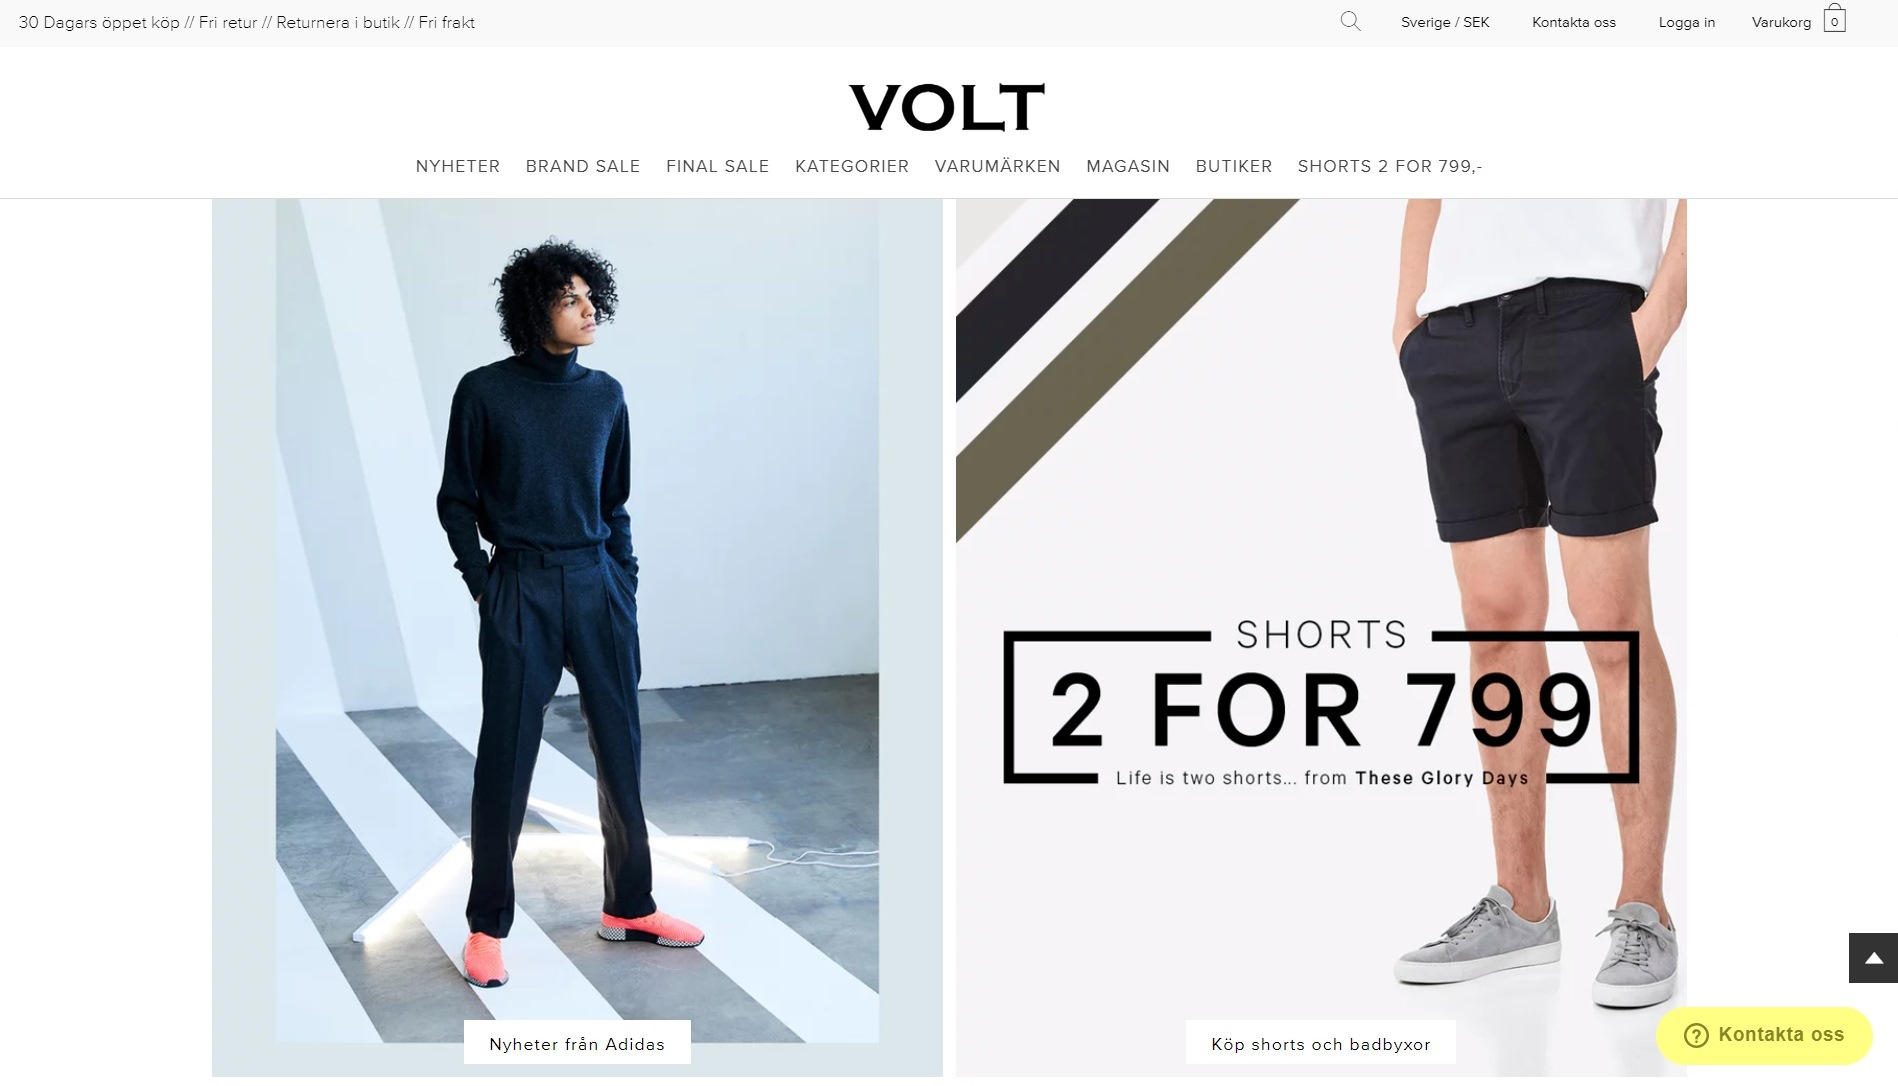 Best clothing stores in stockholm - Volt Fashion